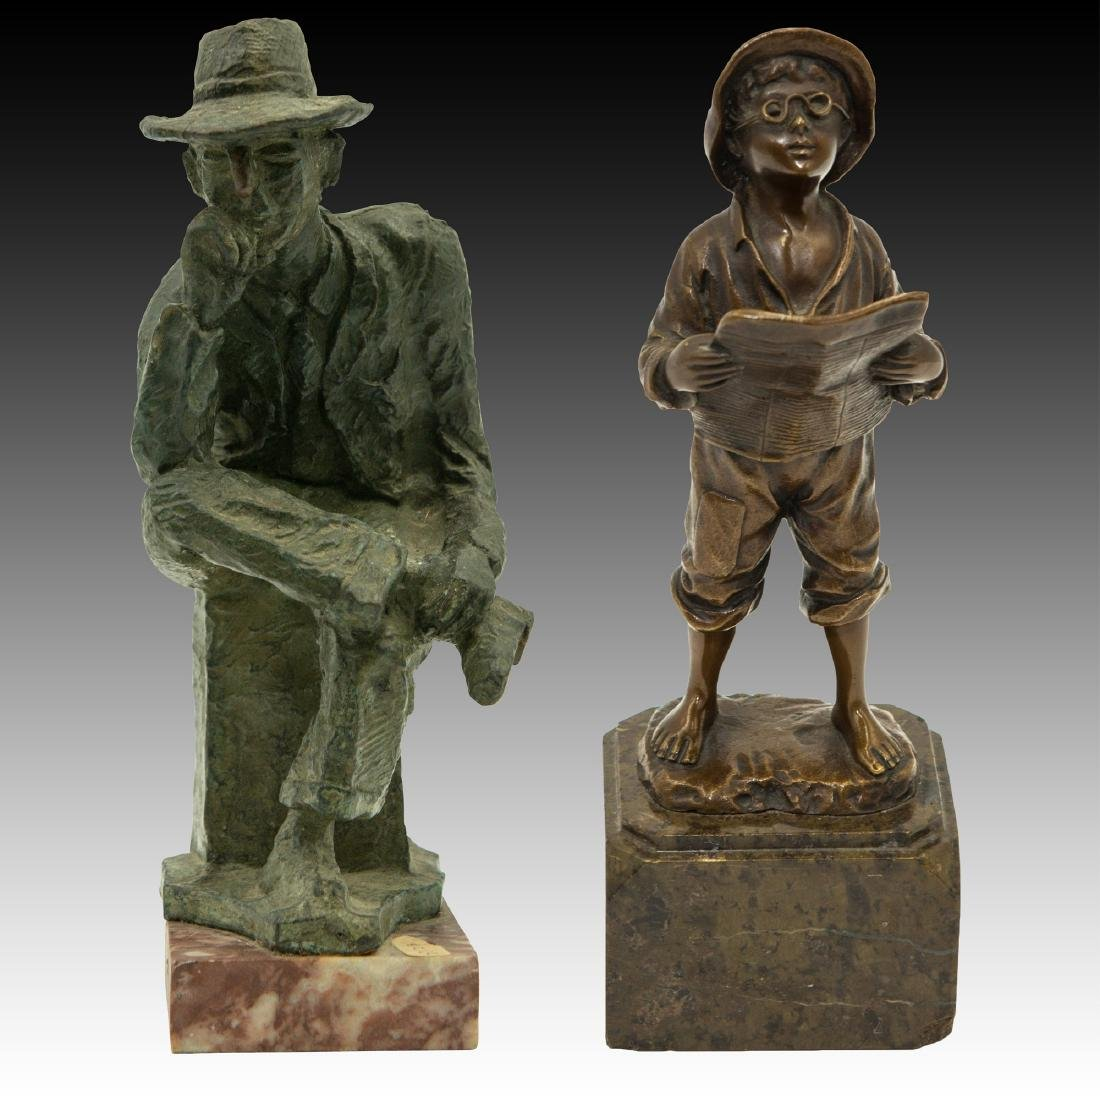 M. GARMAN & J. SCHMIDT-FELLING BRONZE SCULPTURES